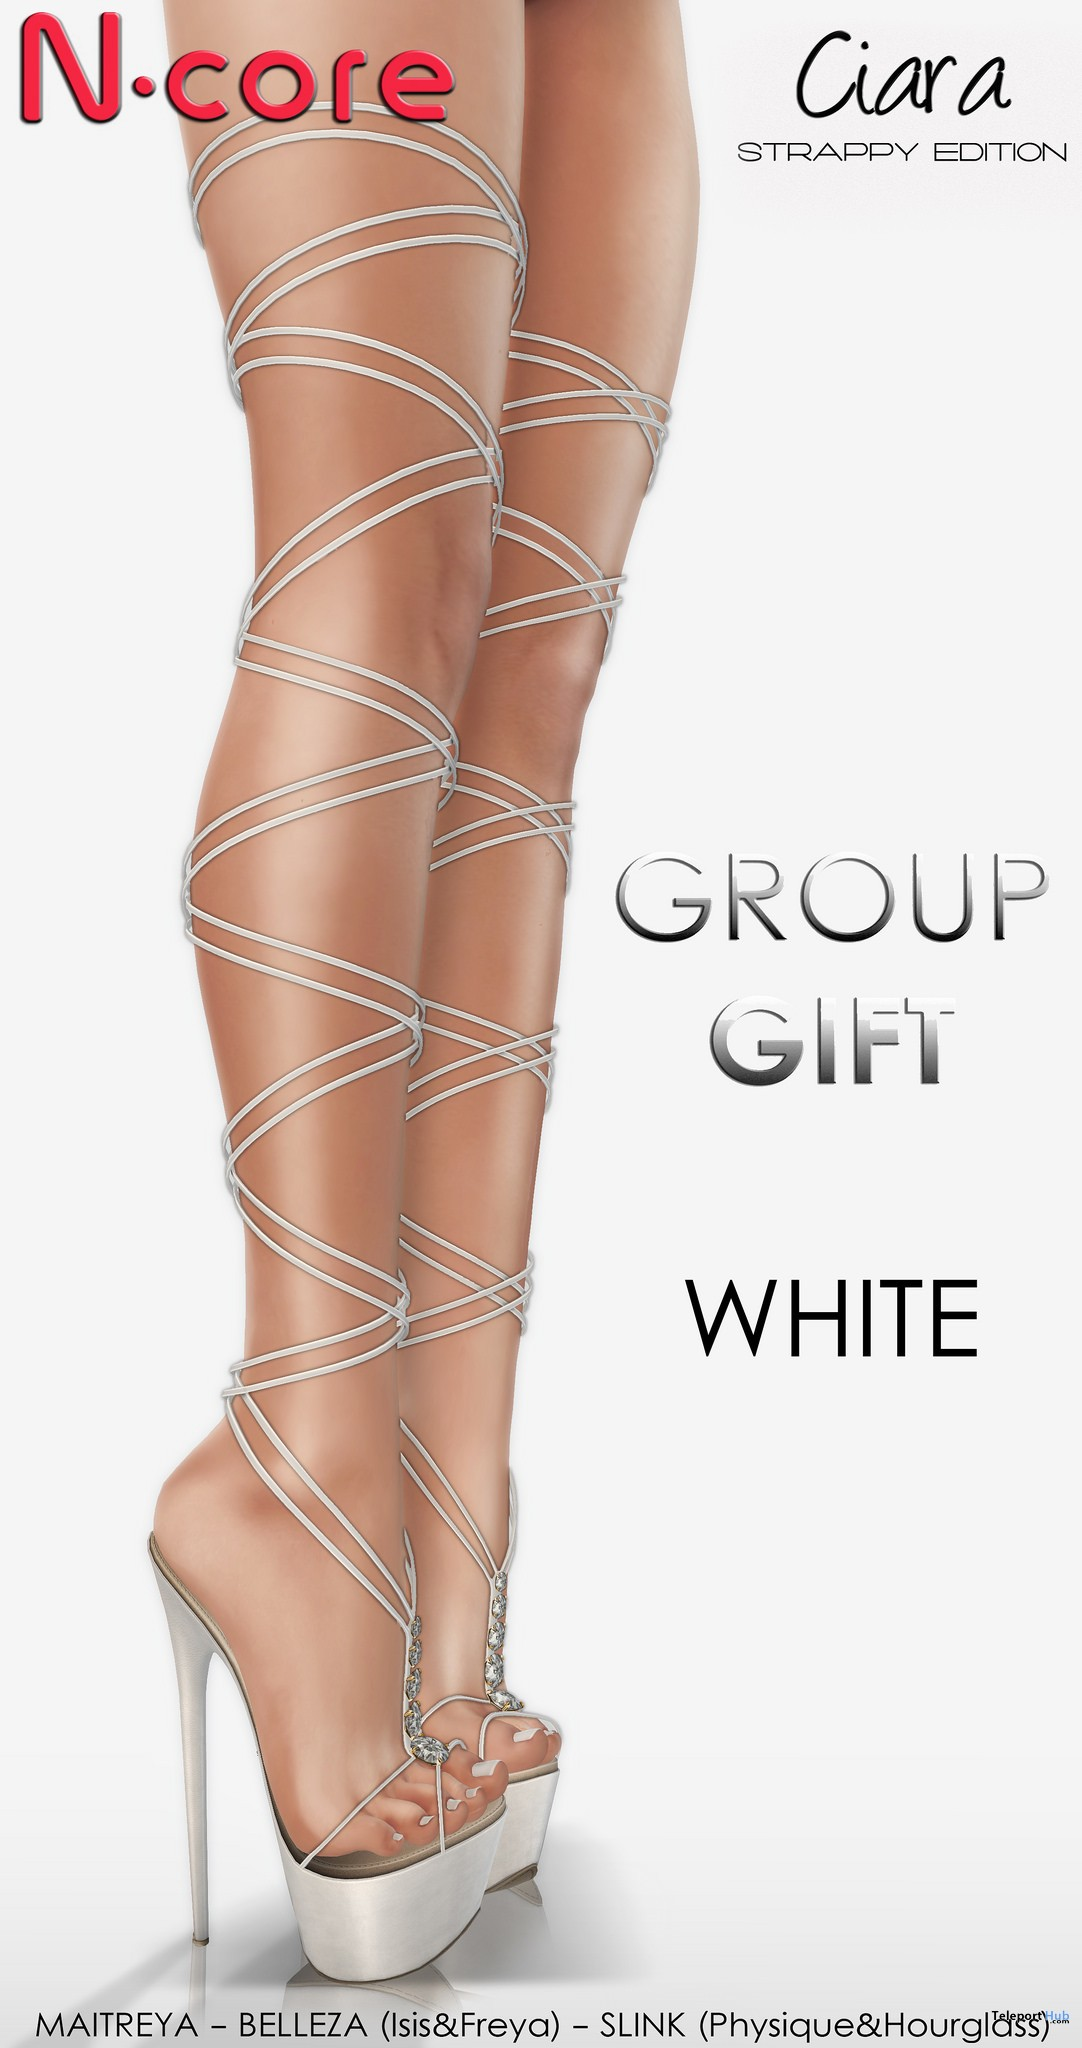 Ciara Heels Strappy Edition White September 2017 Group Gift by N-CORE - Teleport Hub - teleporthub.com